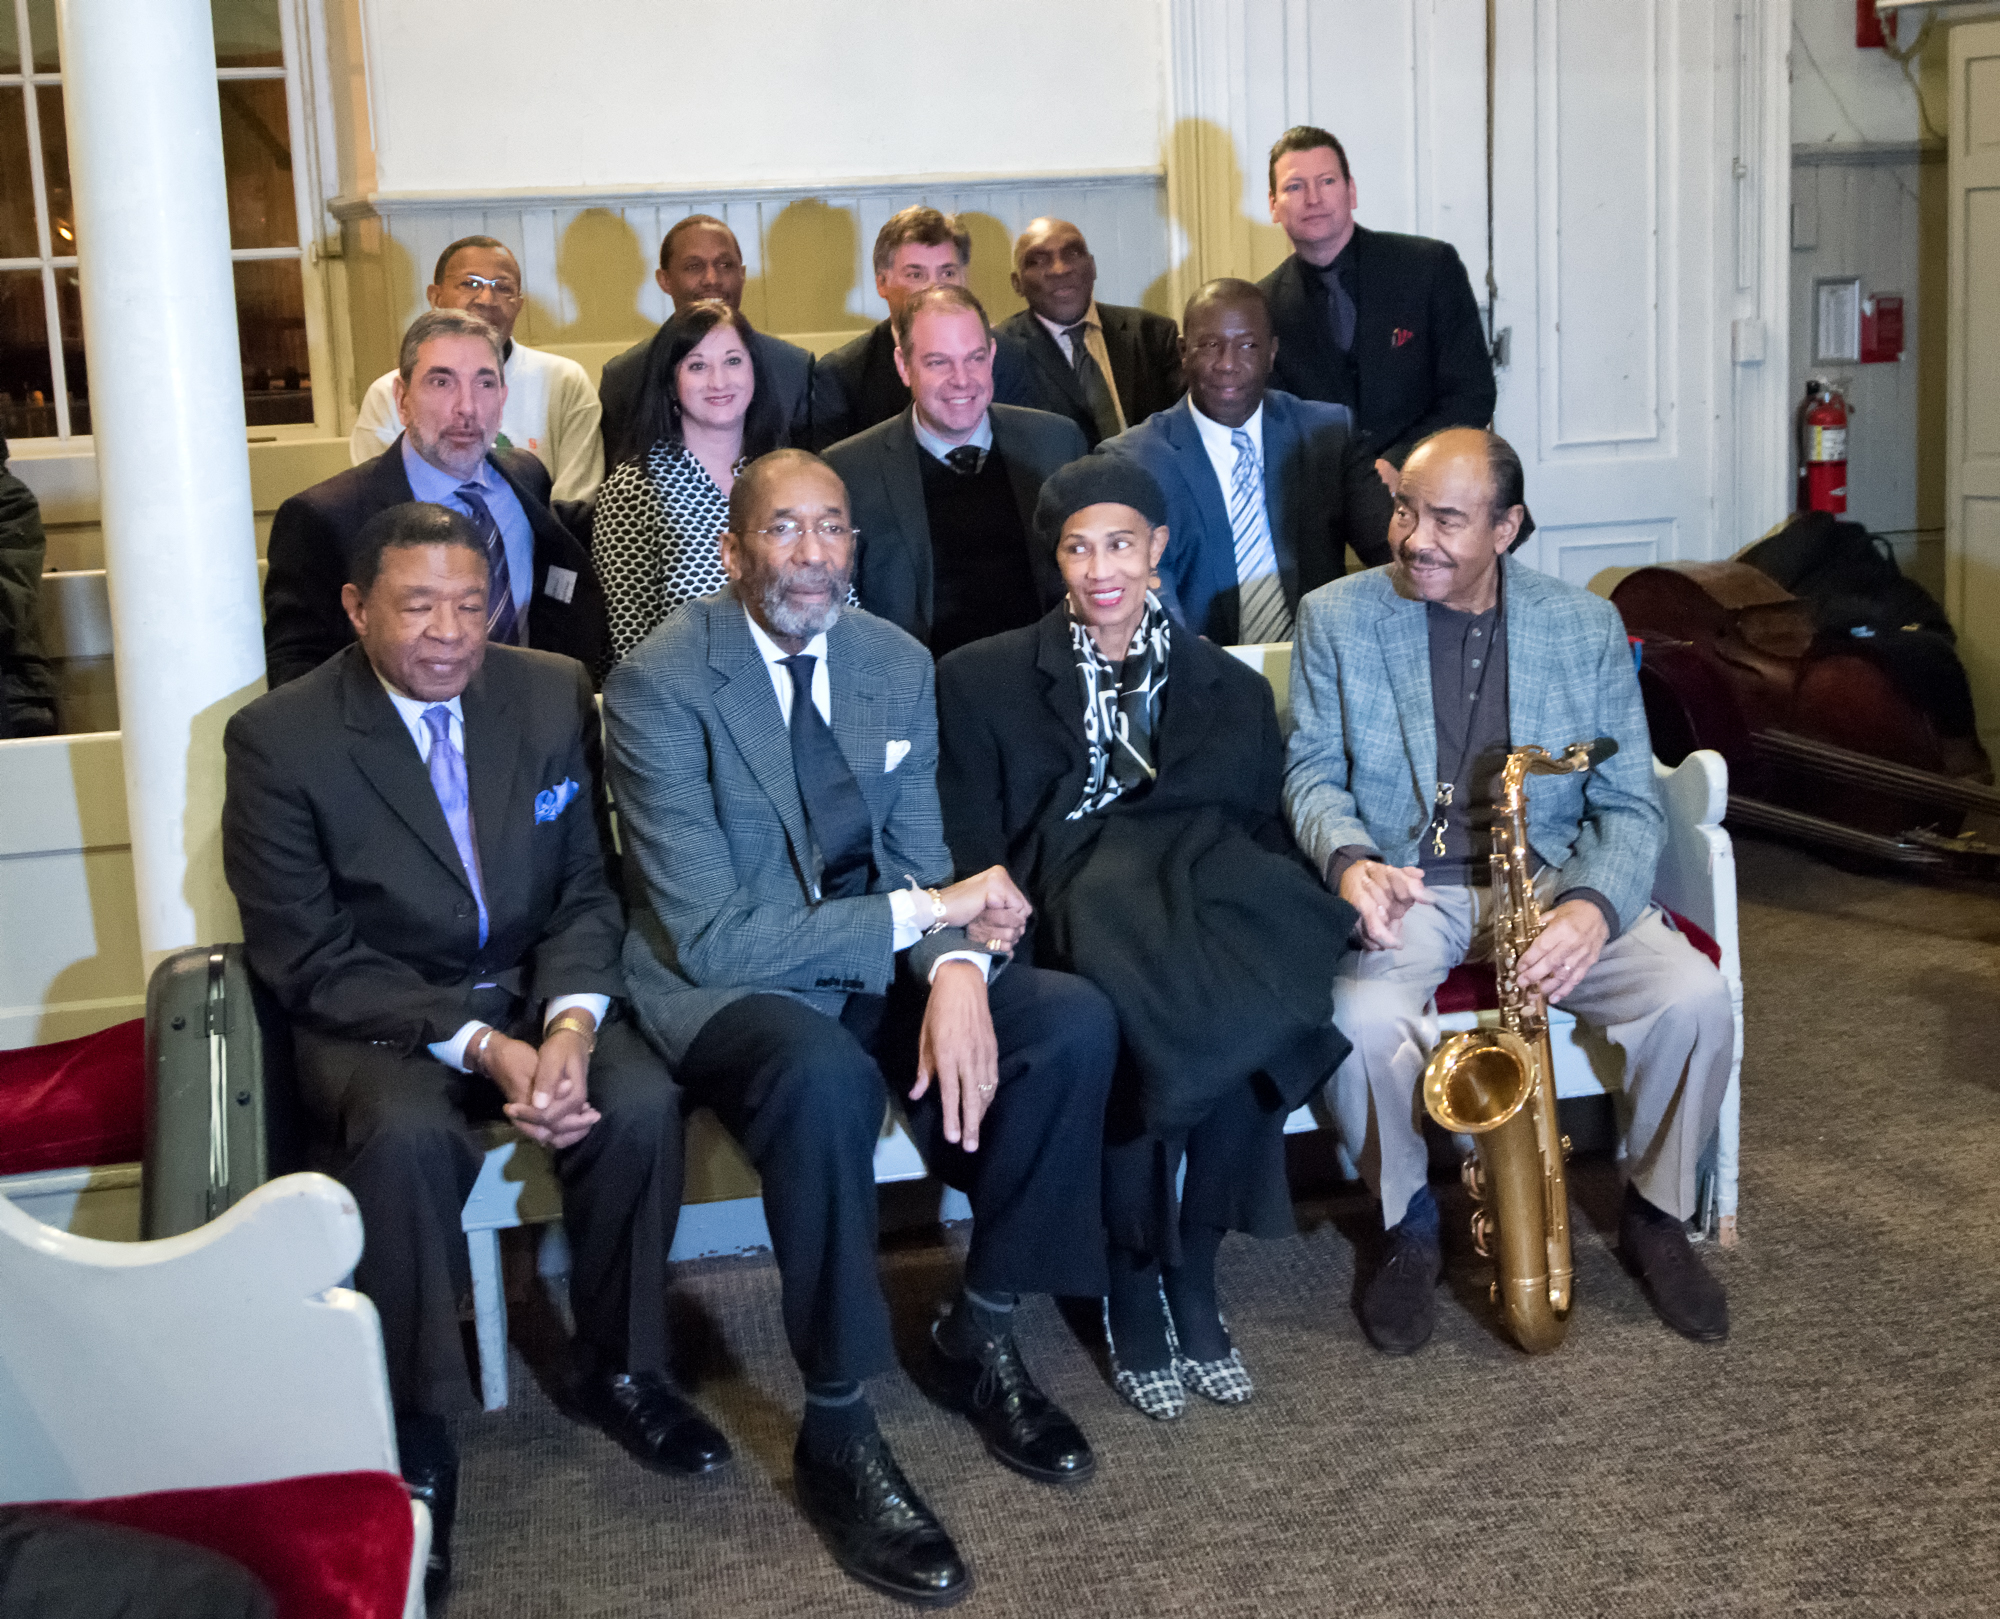 Buster Williams, Ron Carter, Benny Golson, Kenny Washington, Bill Charlap, Renee Rosnes, Mike Ledonne, John Webber, Harold Mabern, Peter Bernstein and Bob Cranshaw at Jazz Legends Play for Disability Pride at Nyc Winter Jazzfest 2015